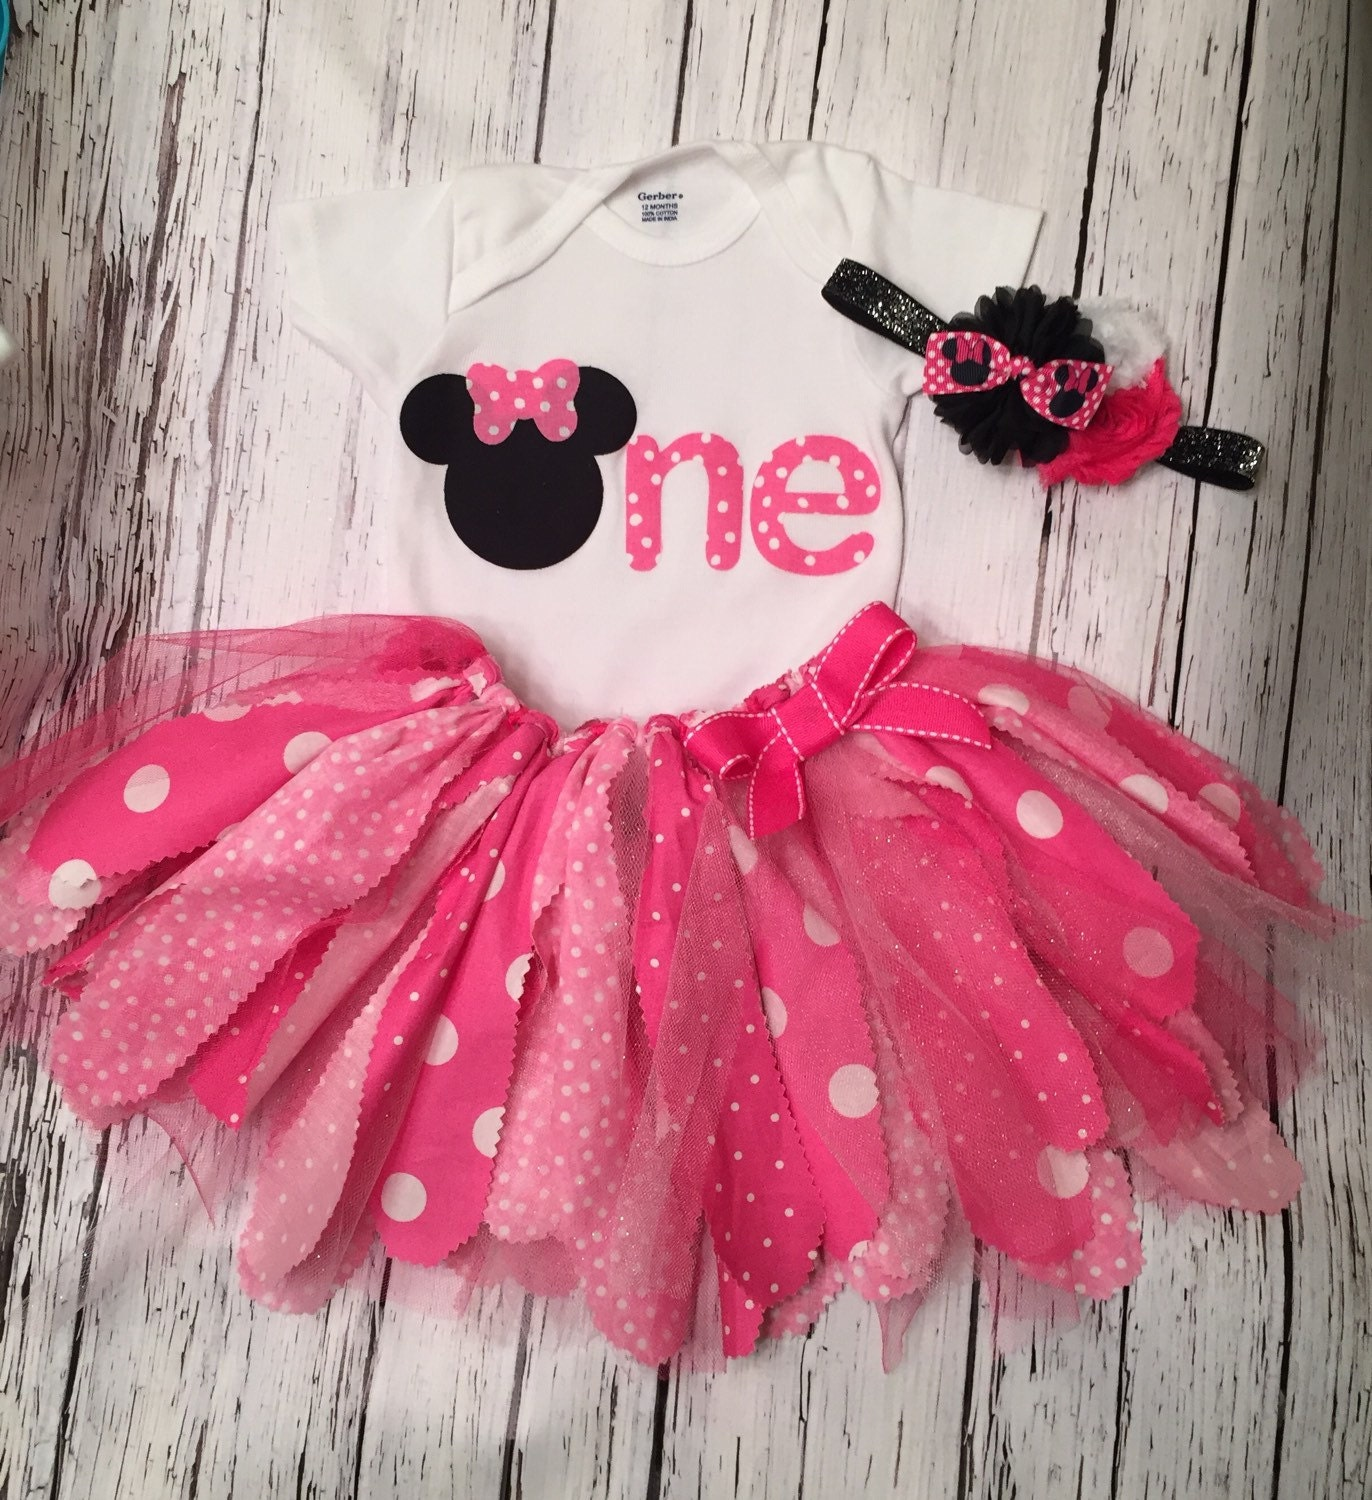 Birthday Party Outfit: Minnie Mouse Birthday Outfit. Minnie First Birthday Outfit